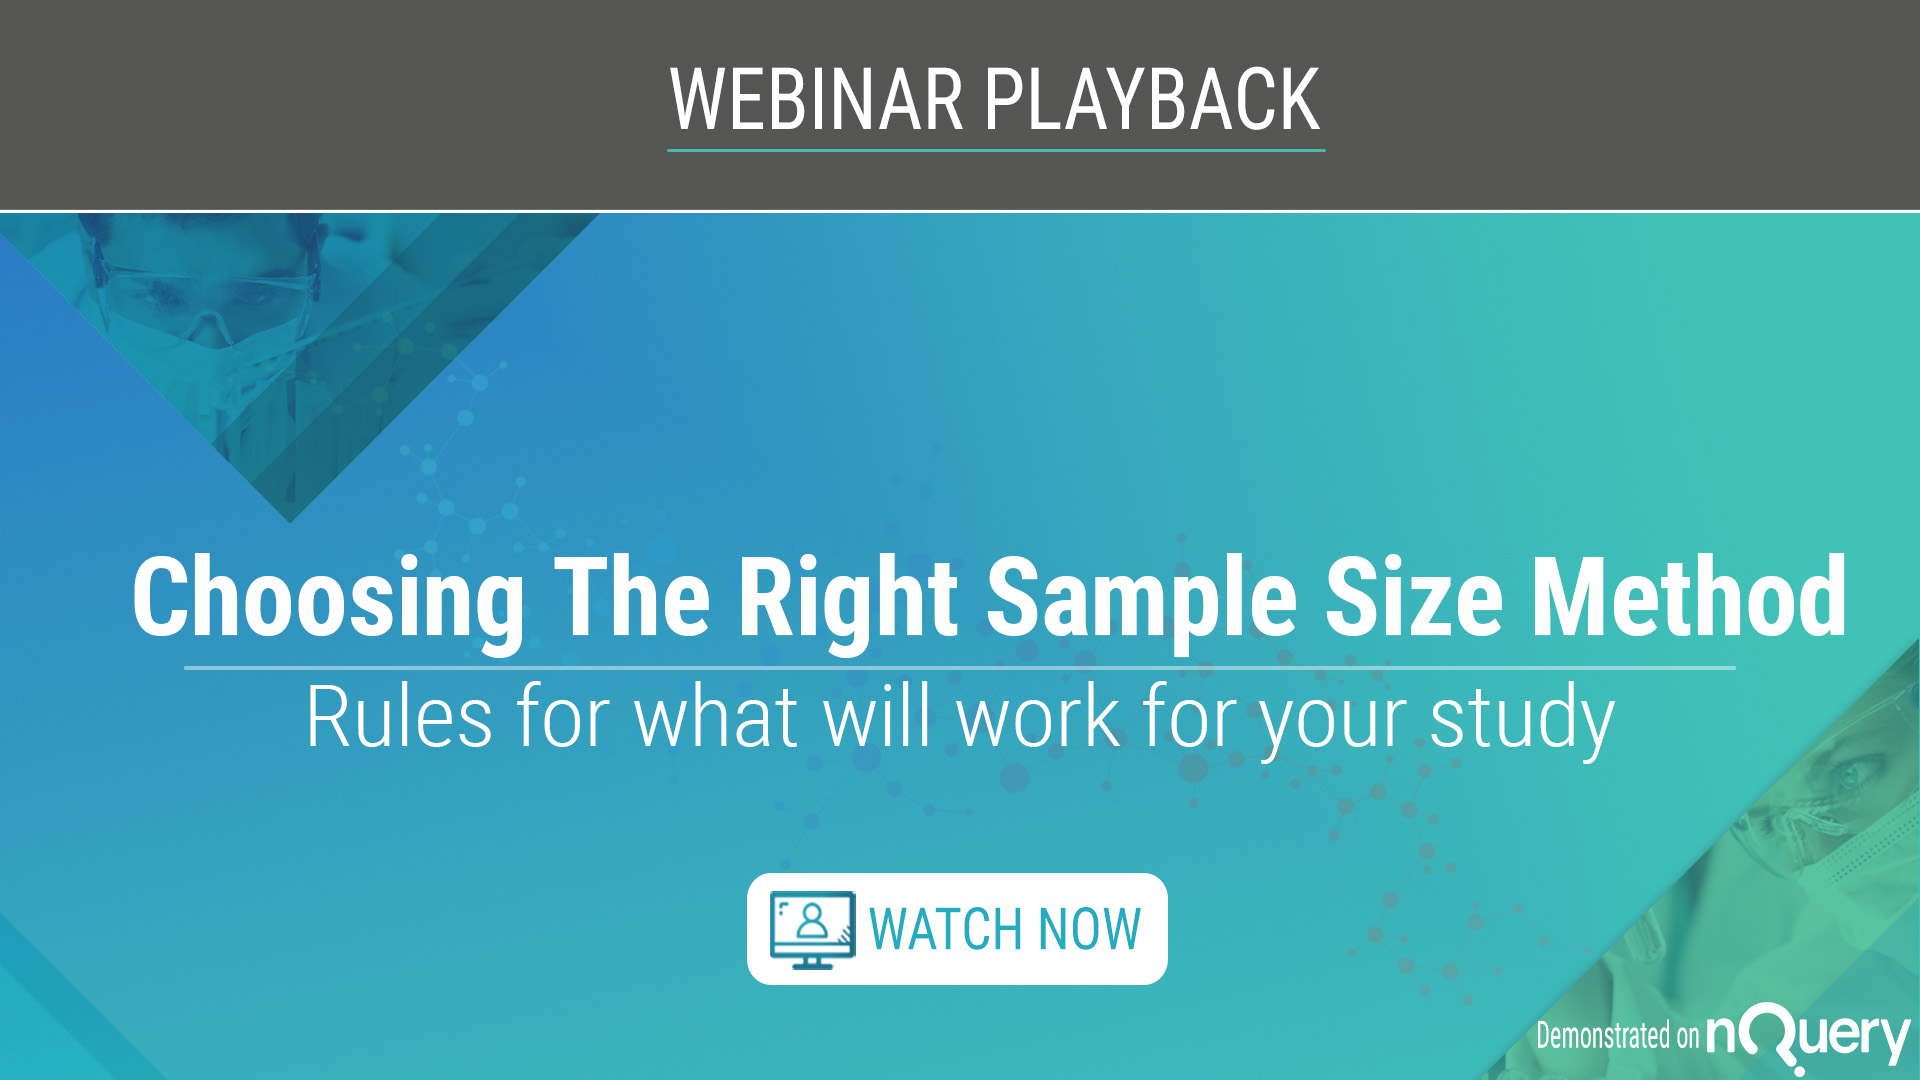 Choosing the Right Sample Size Method Playback